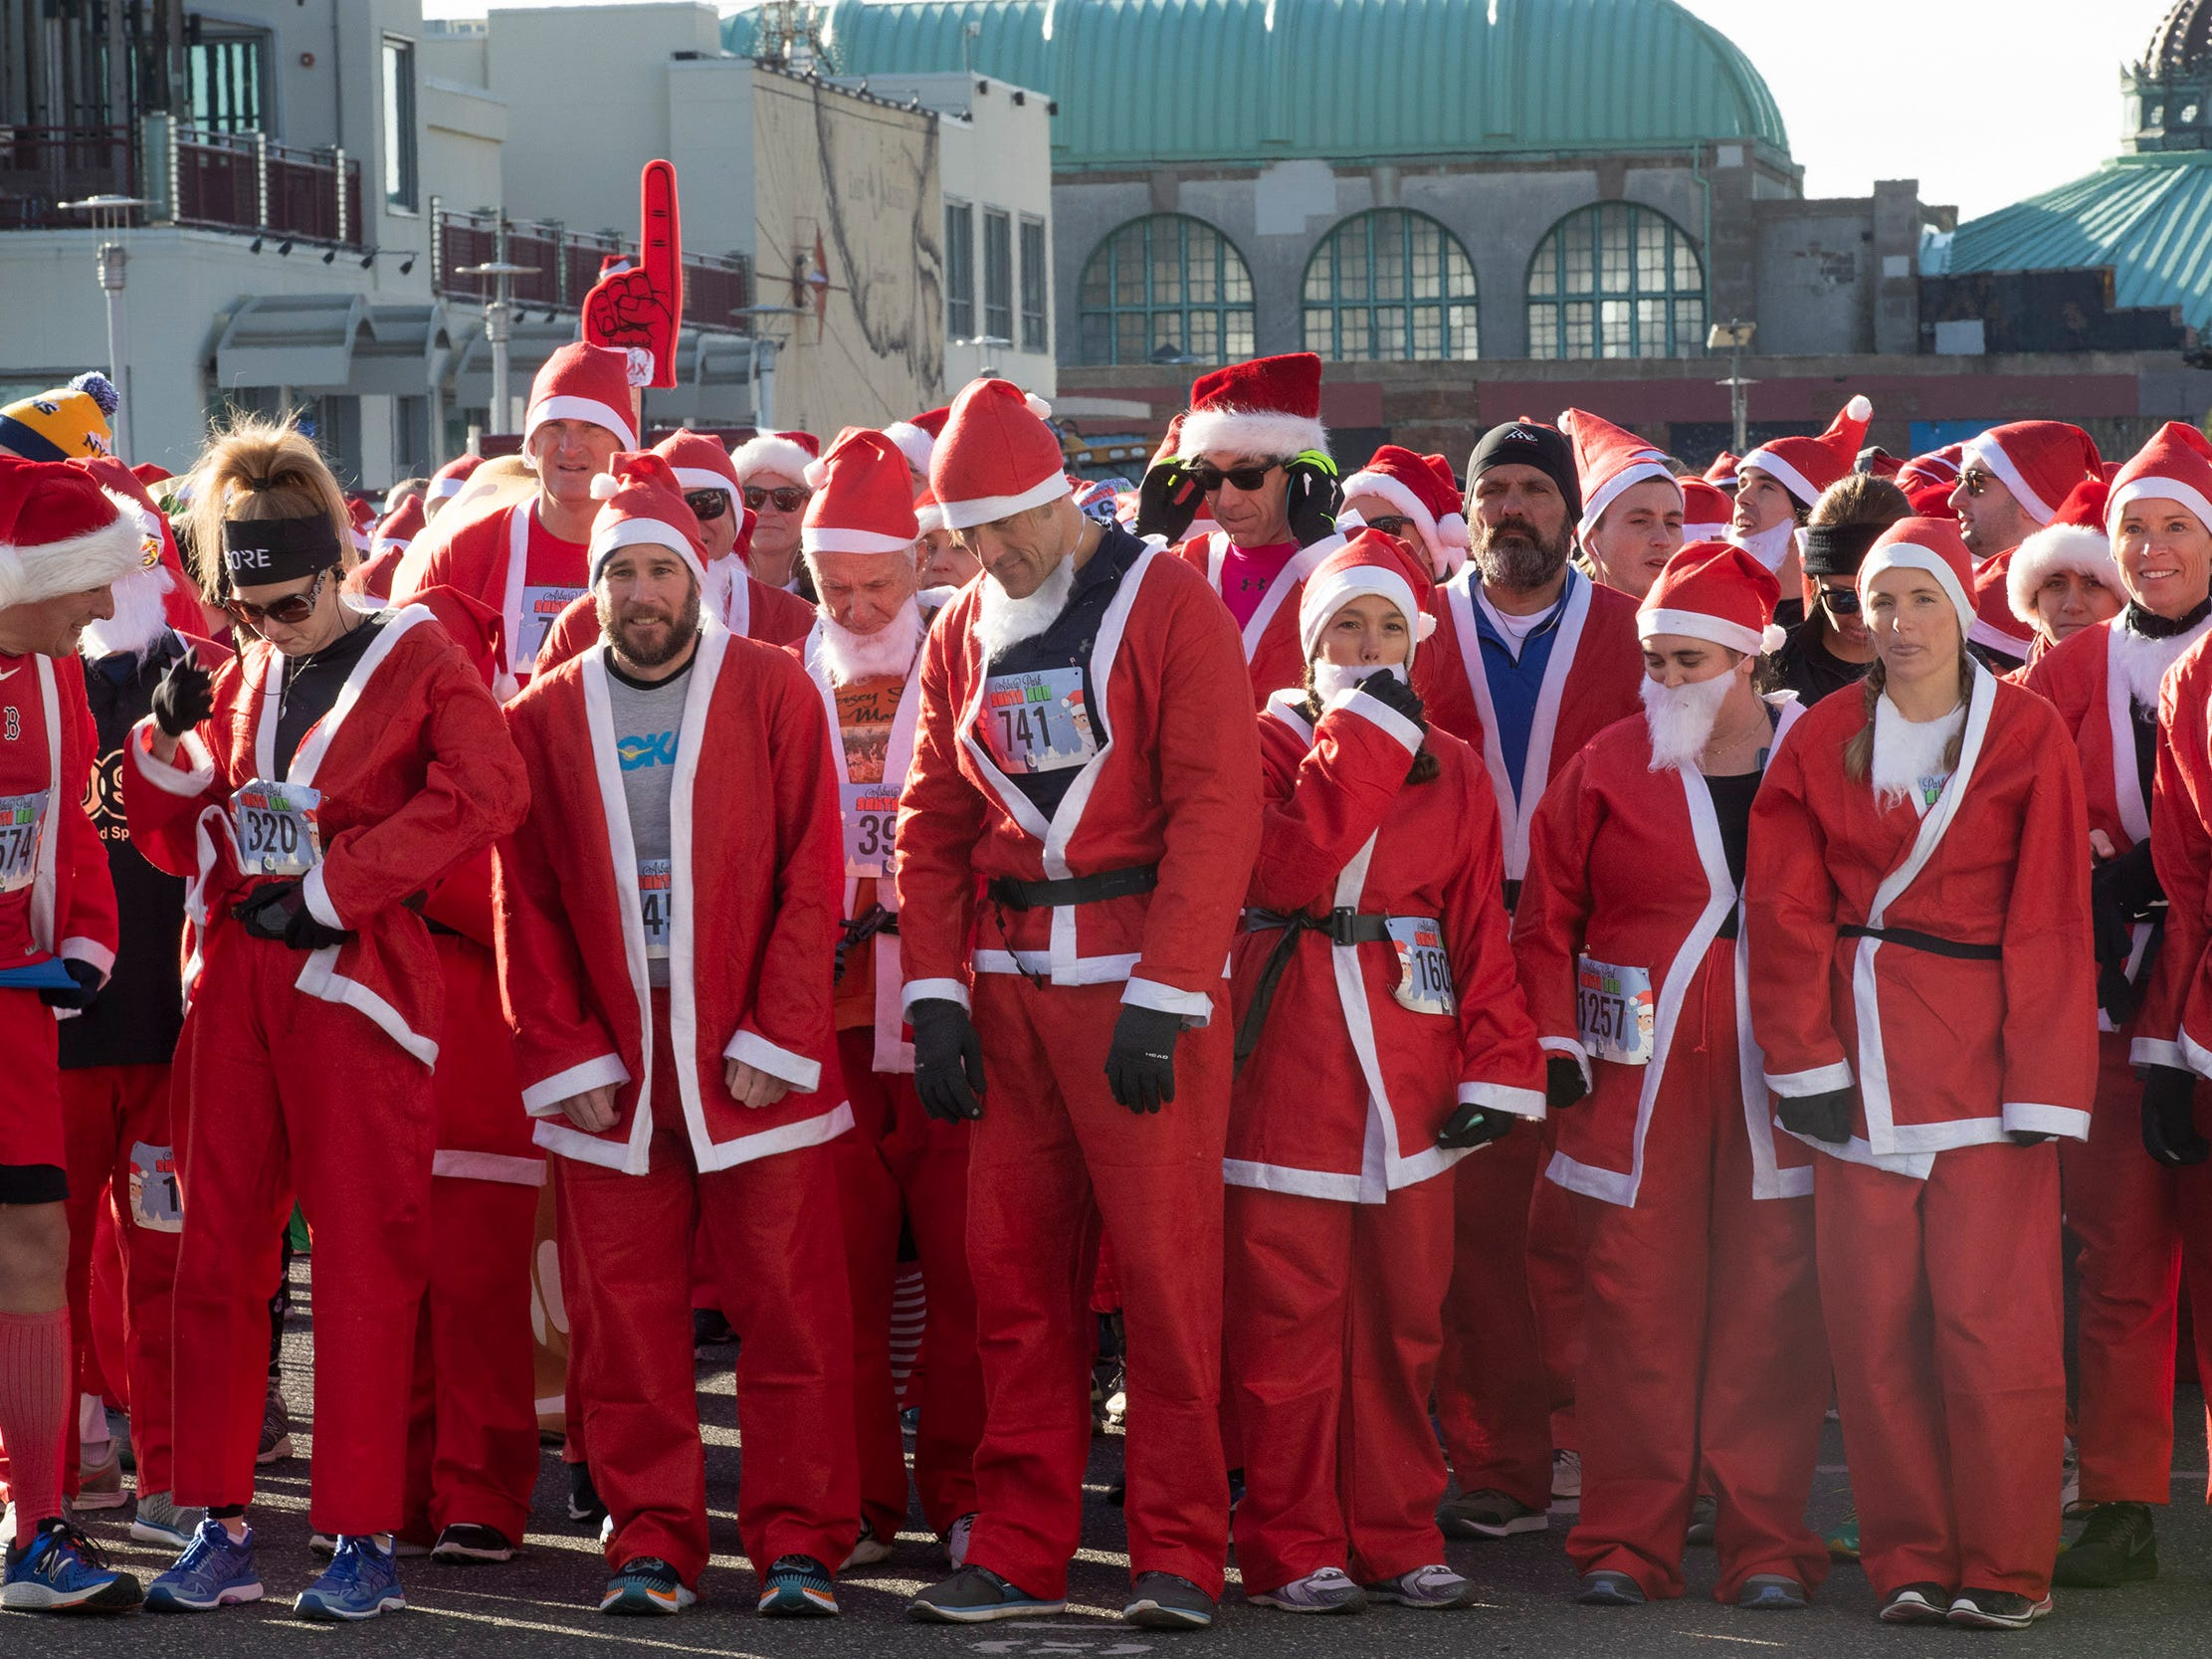 Runers line up for start of the race. Runners brave the cold to participate in the annual Santa Run 5K in Asbury Park on December 8, 2018.